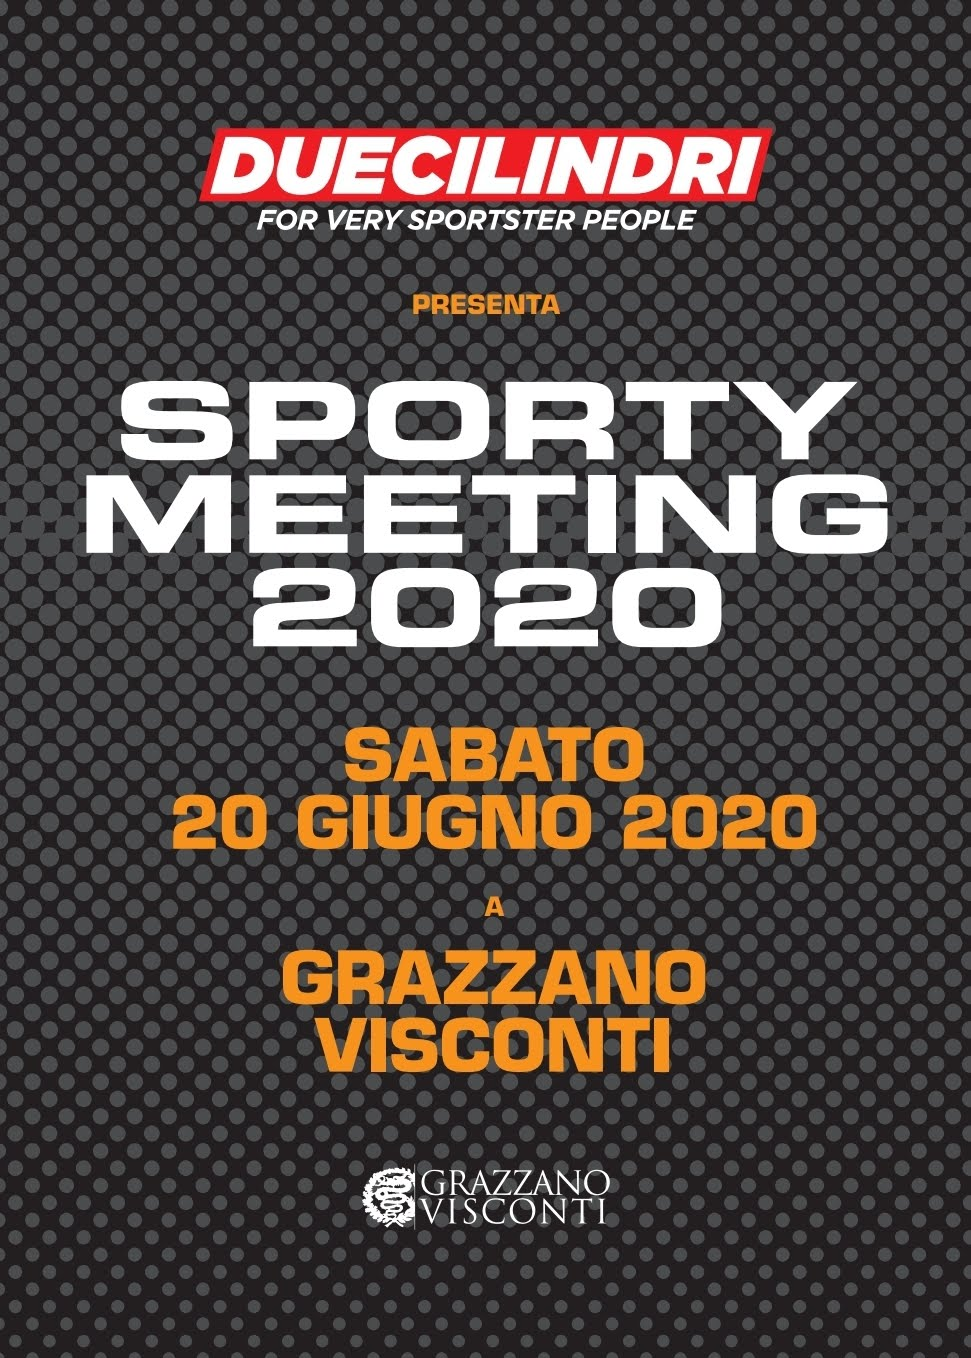 SPORTY MEETING 2020